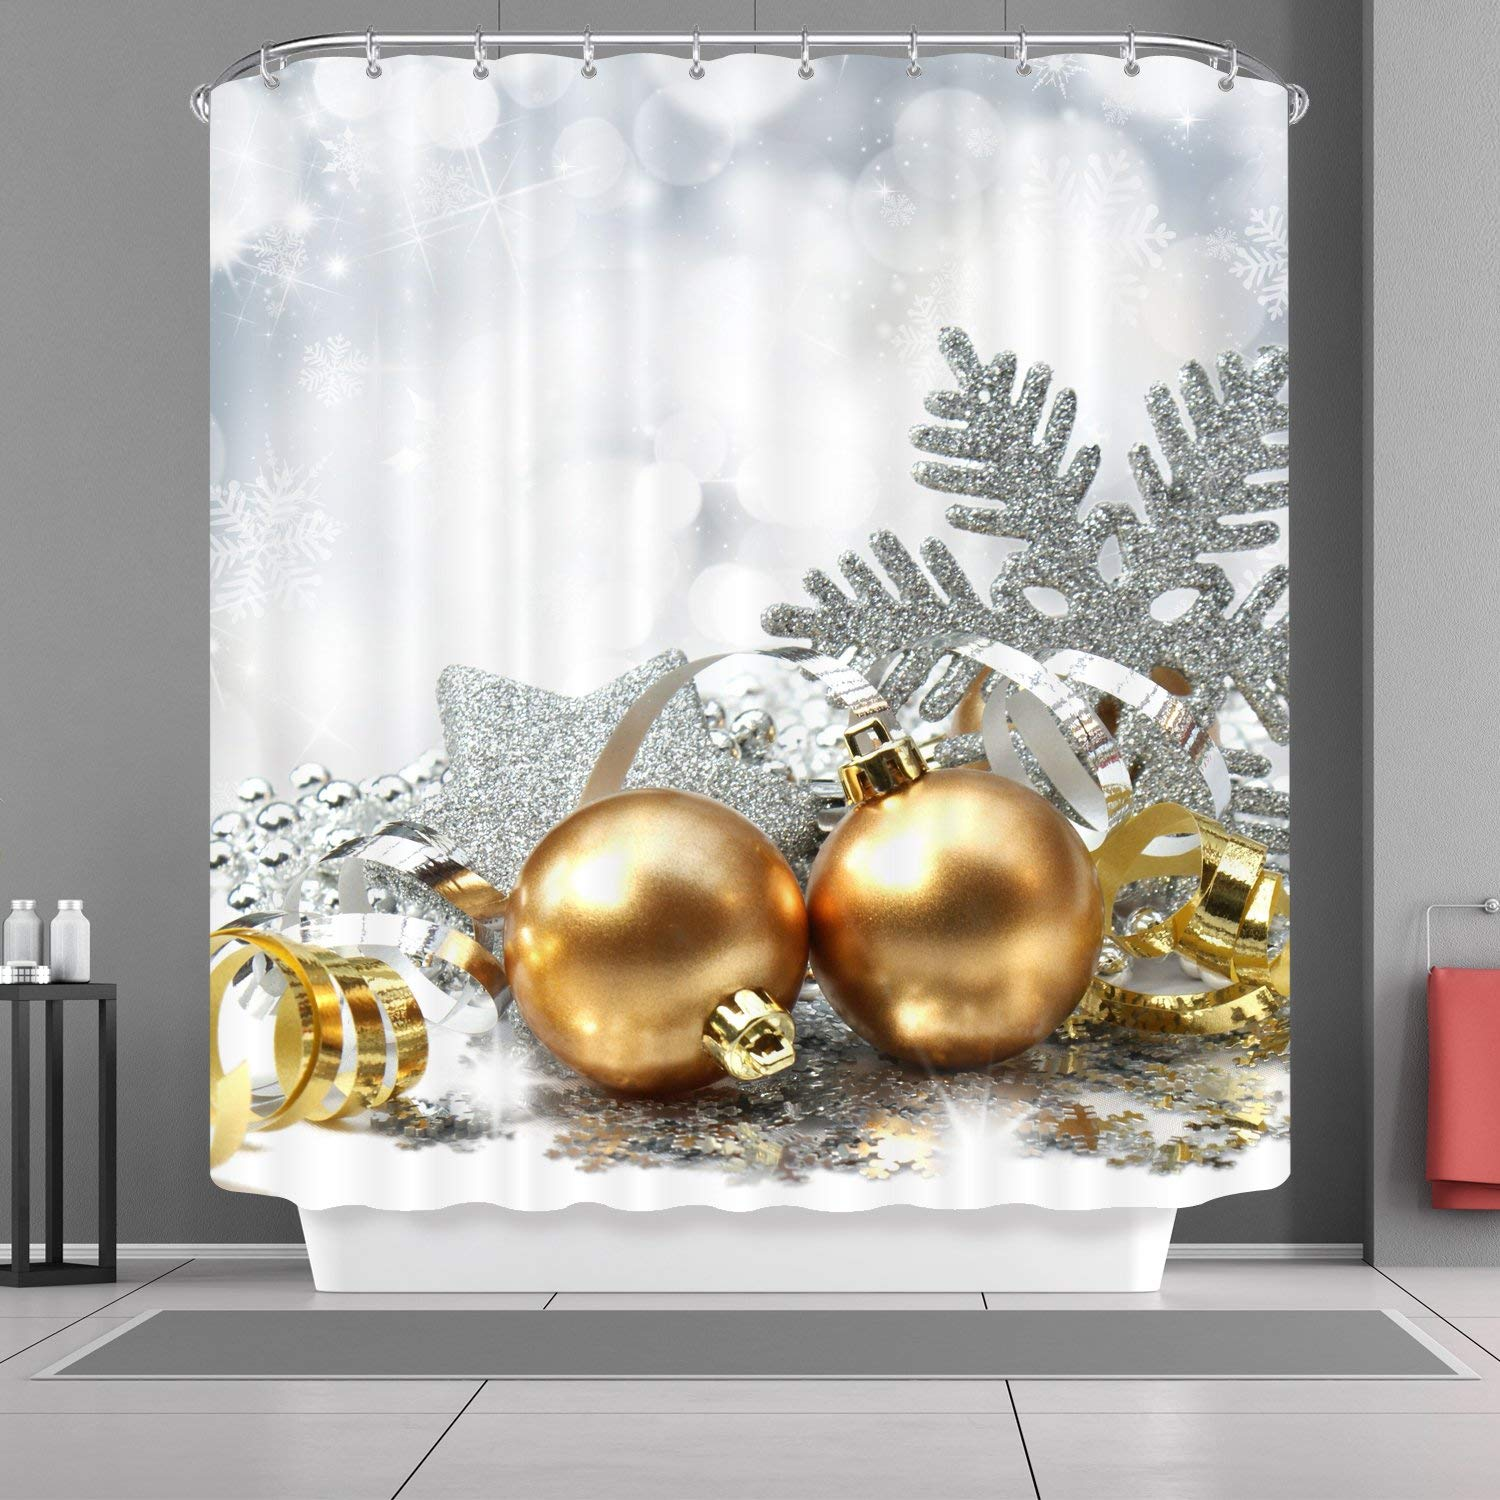 Christmas Bathroom Curtains.Home Shower Curtains Hooks Liners Vancar Christmas Shower